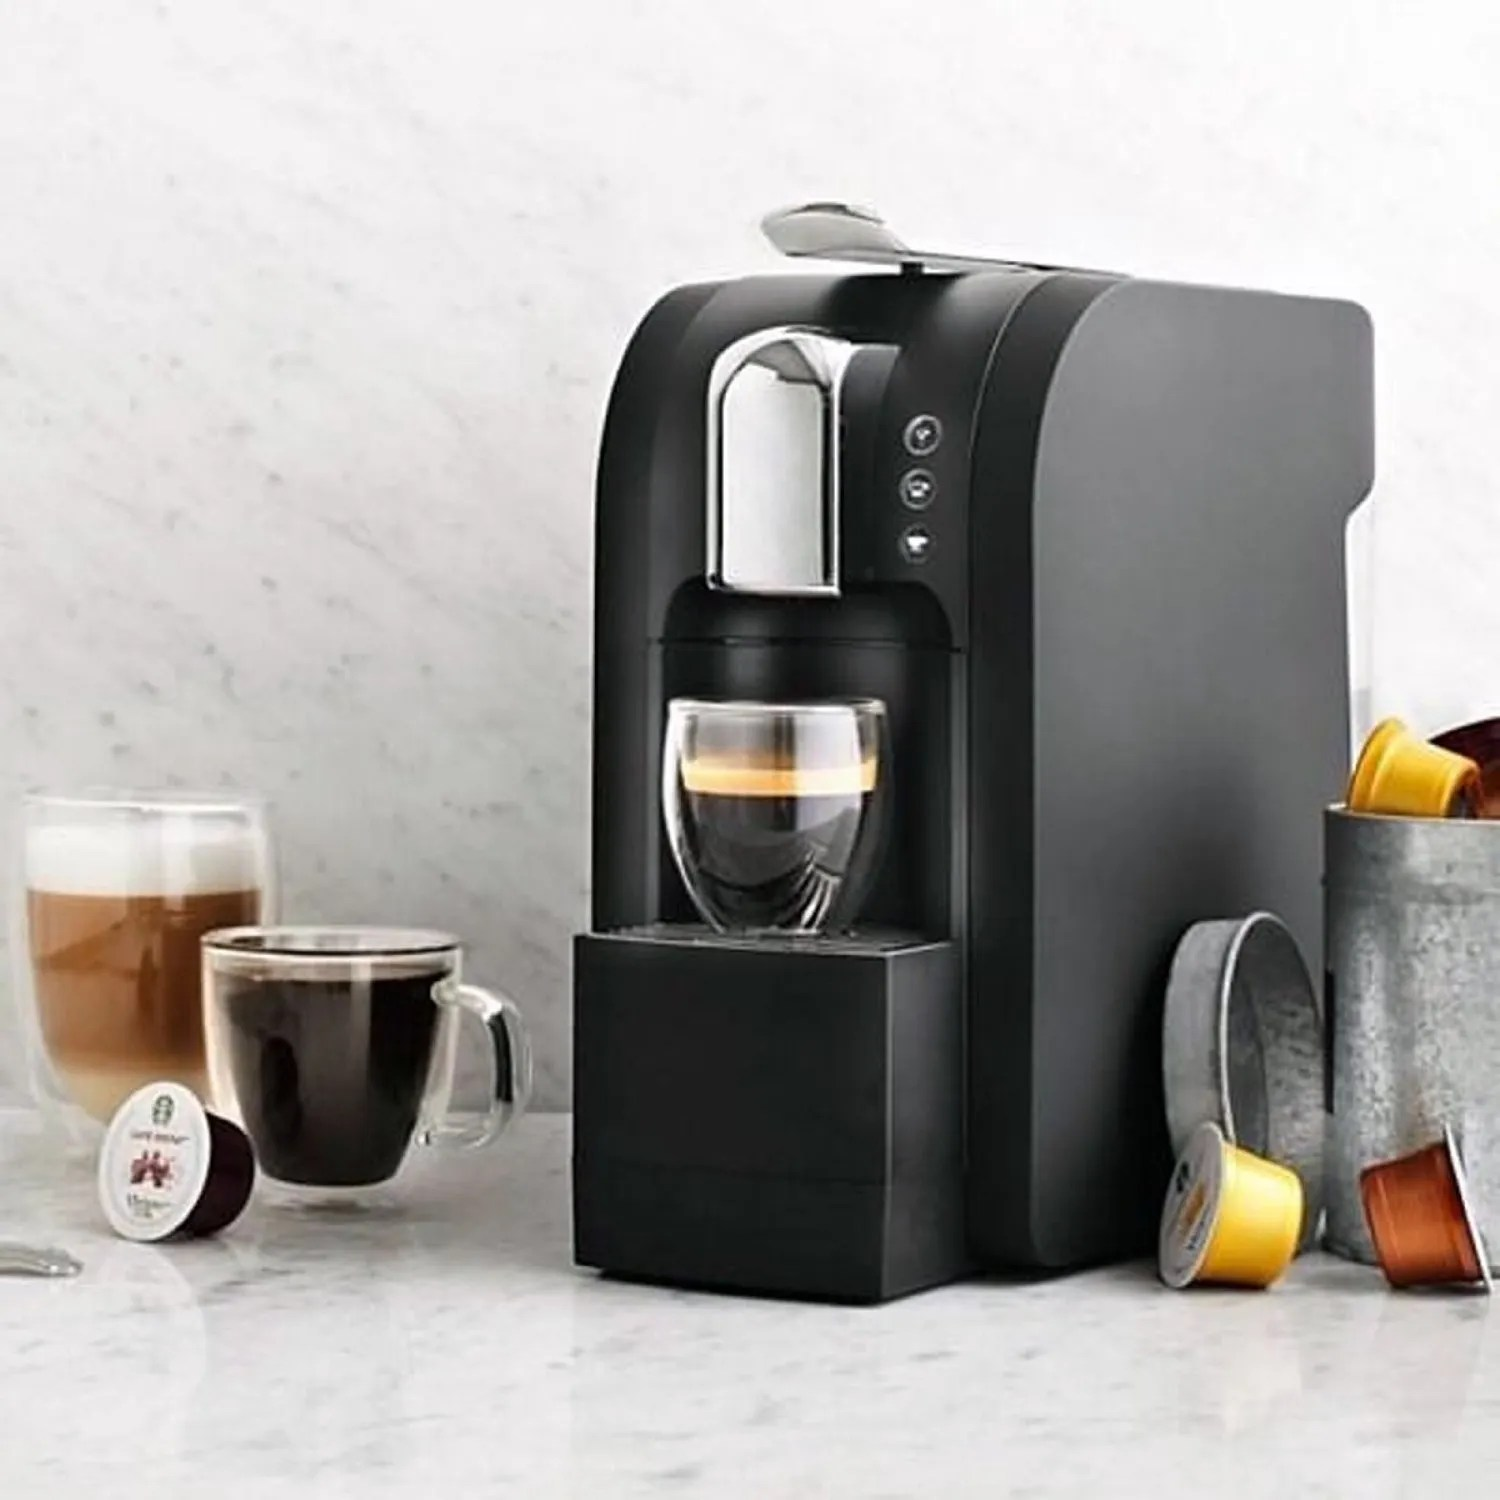 Best Coffee Pod Machines UK 2018 - Top 5 Pod Machines Reviewed